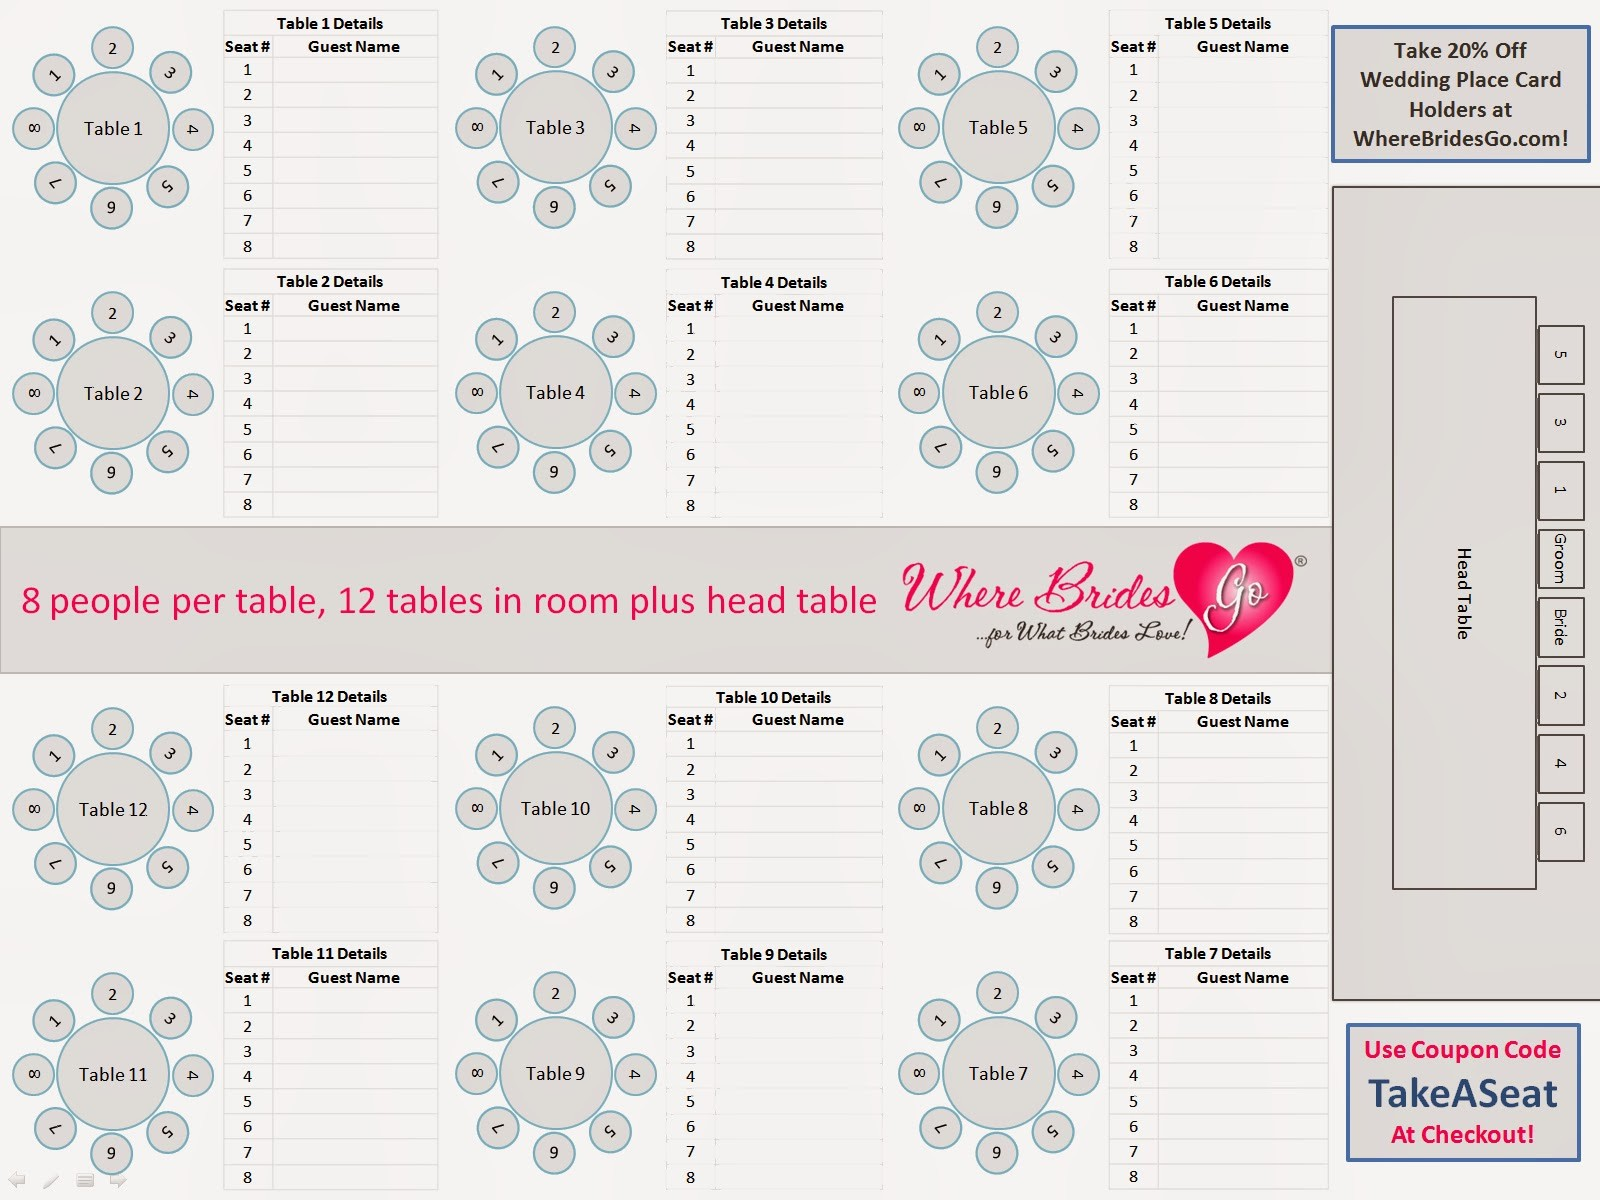 Seating Chart Wedding Template Free Best Of Seating Chart for Wedding Reception Template